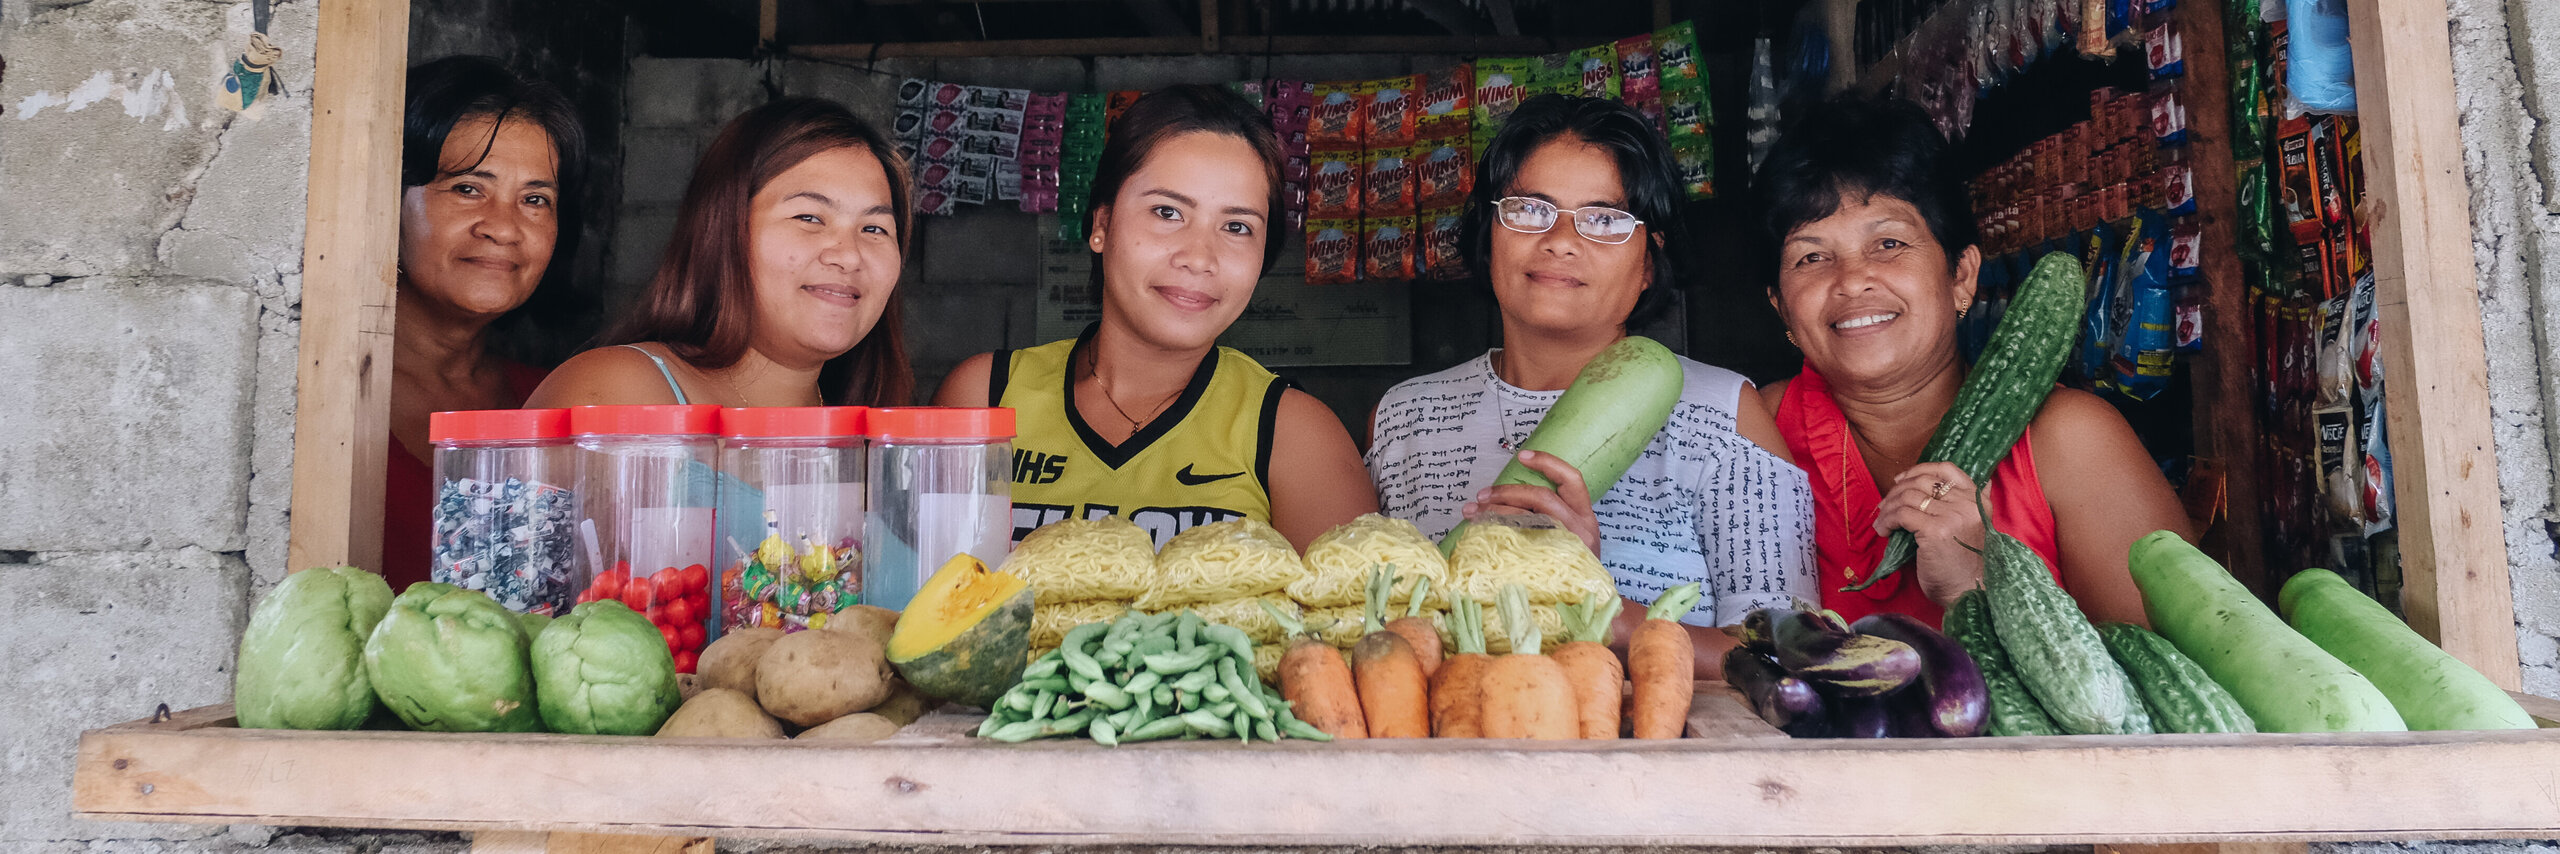 Women in a vegetable store in the Philippines